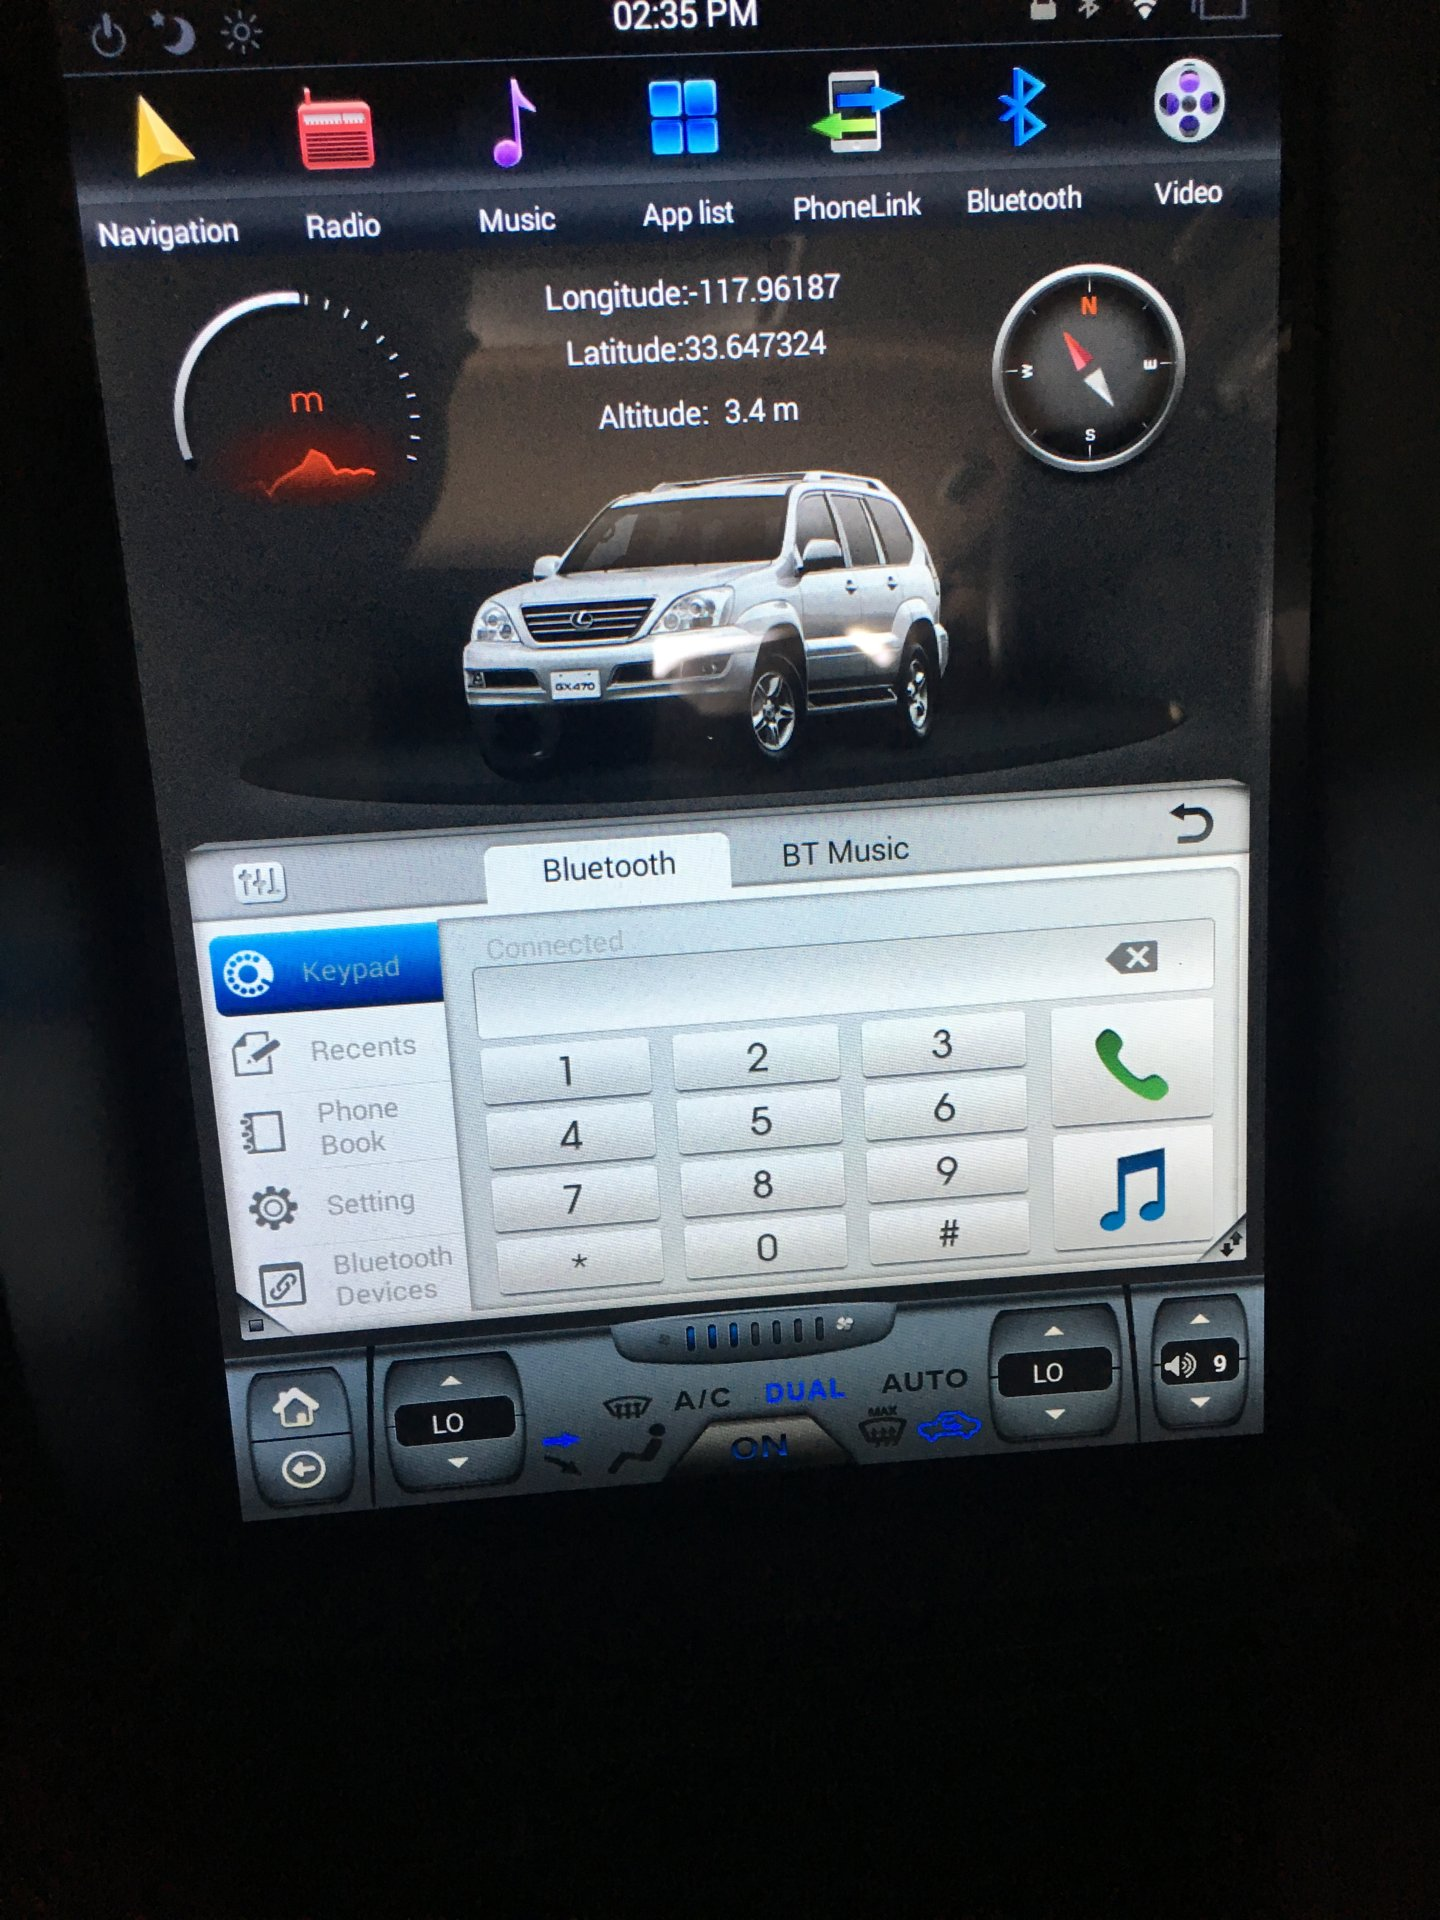 Android Car Stereo Recovery Mode